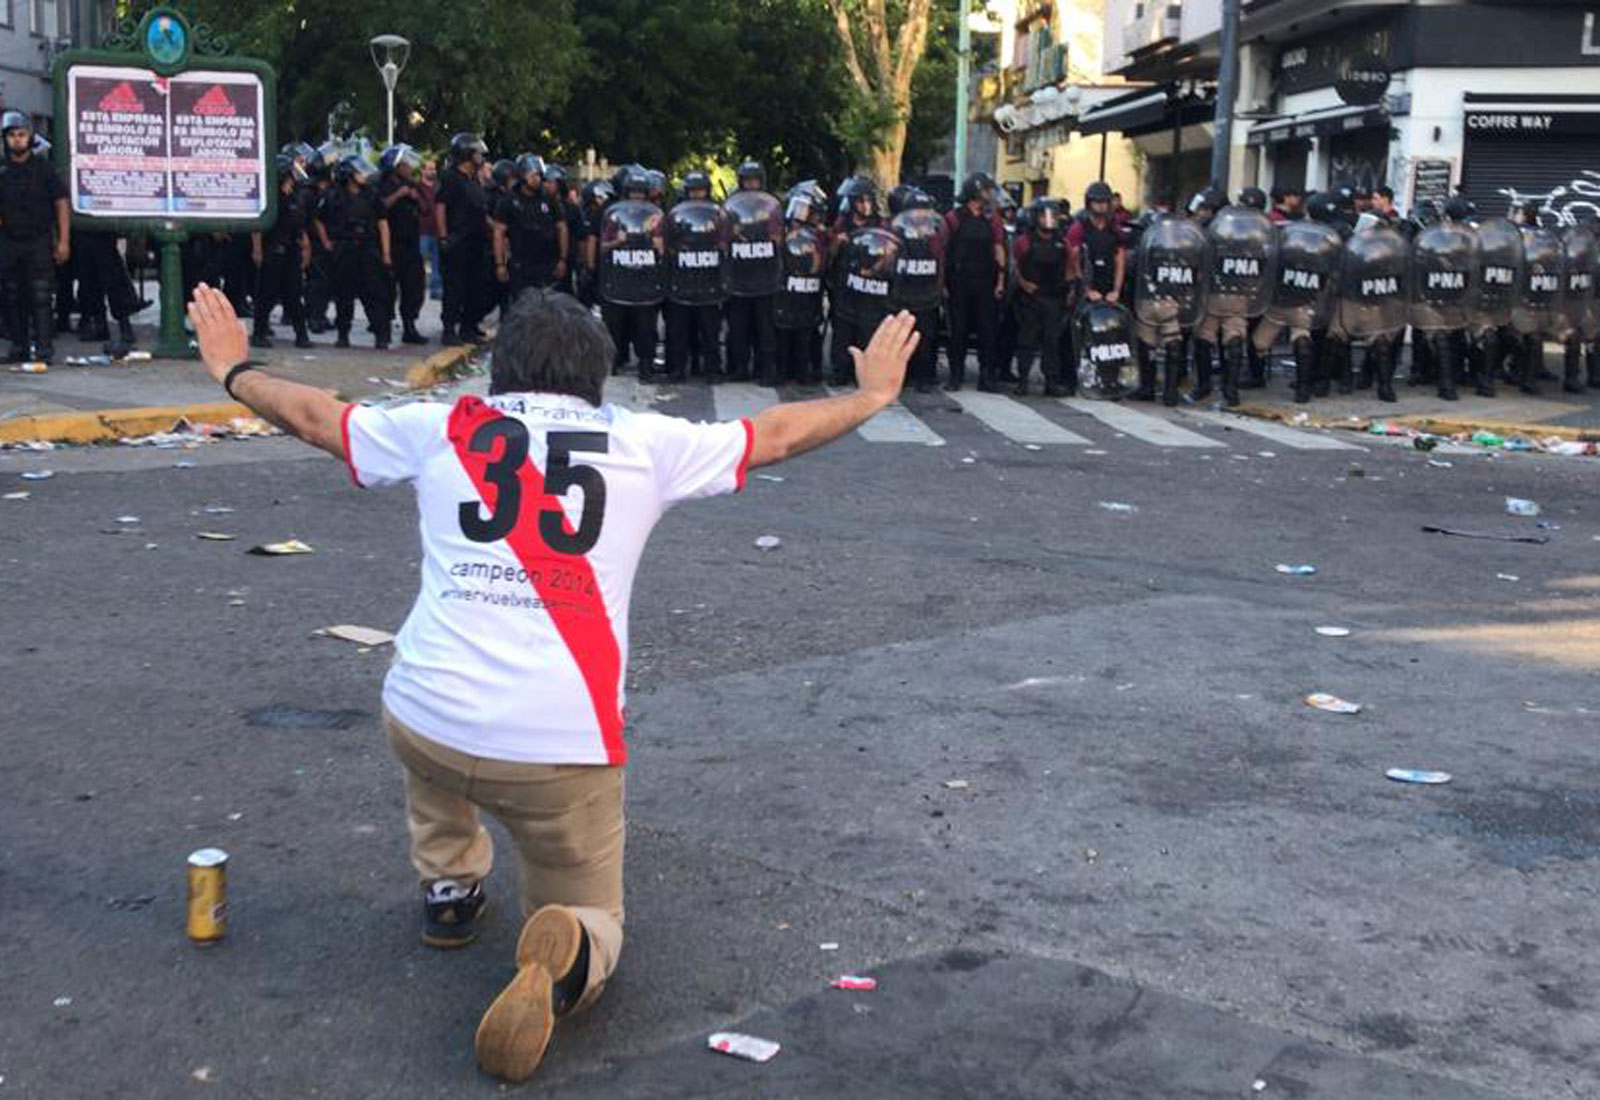 A River Plate fan confronts riot police at the Copa Libertadores final